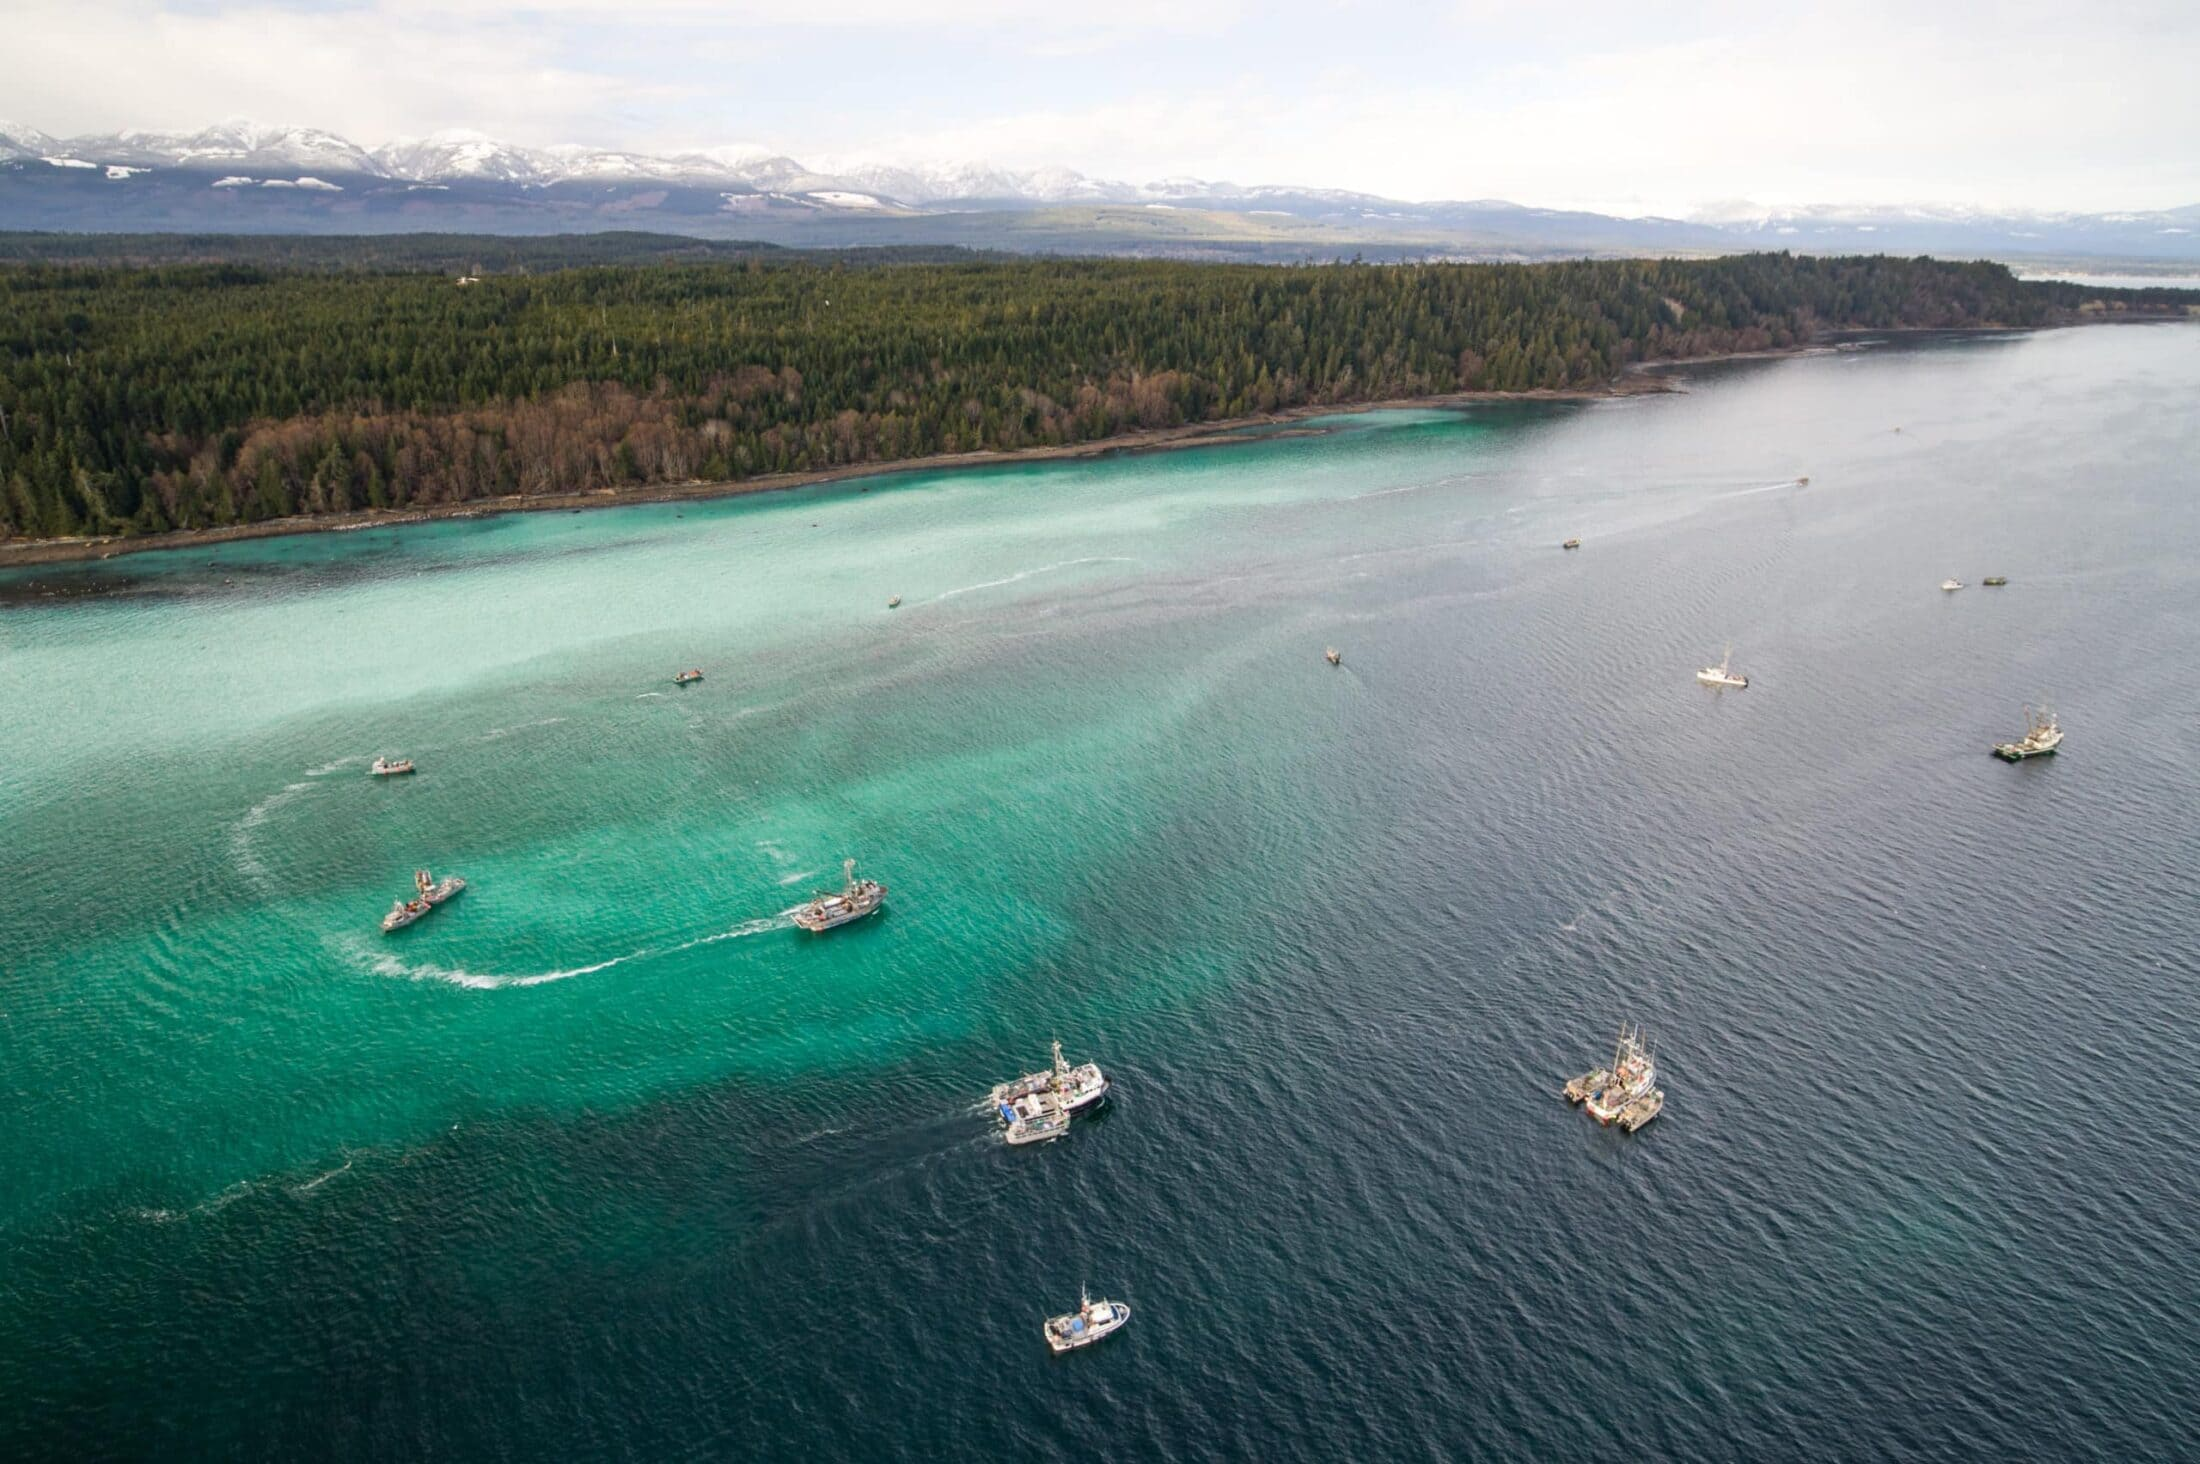 aerial view of net fishing boats